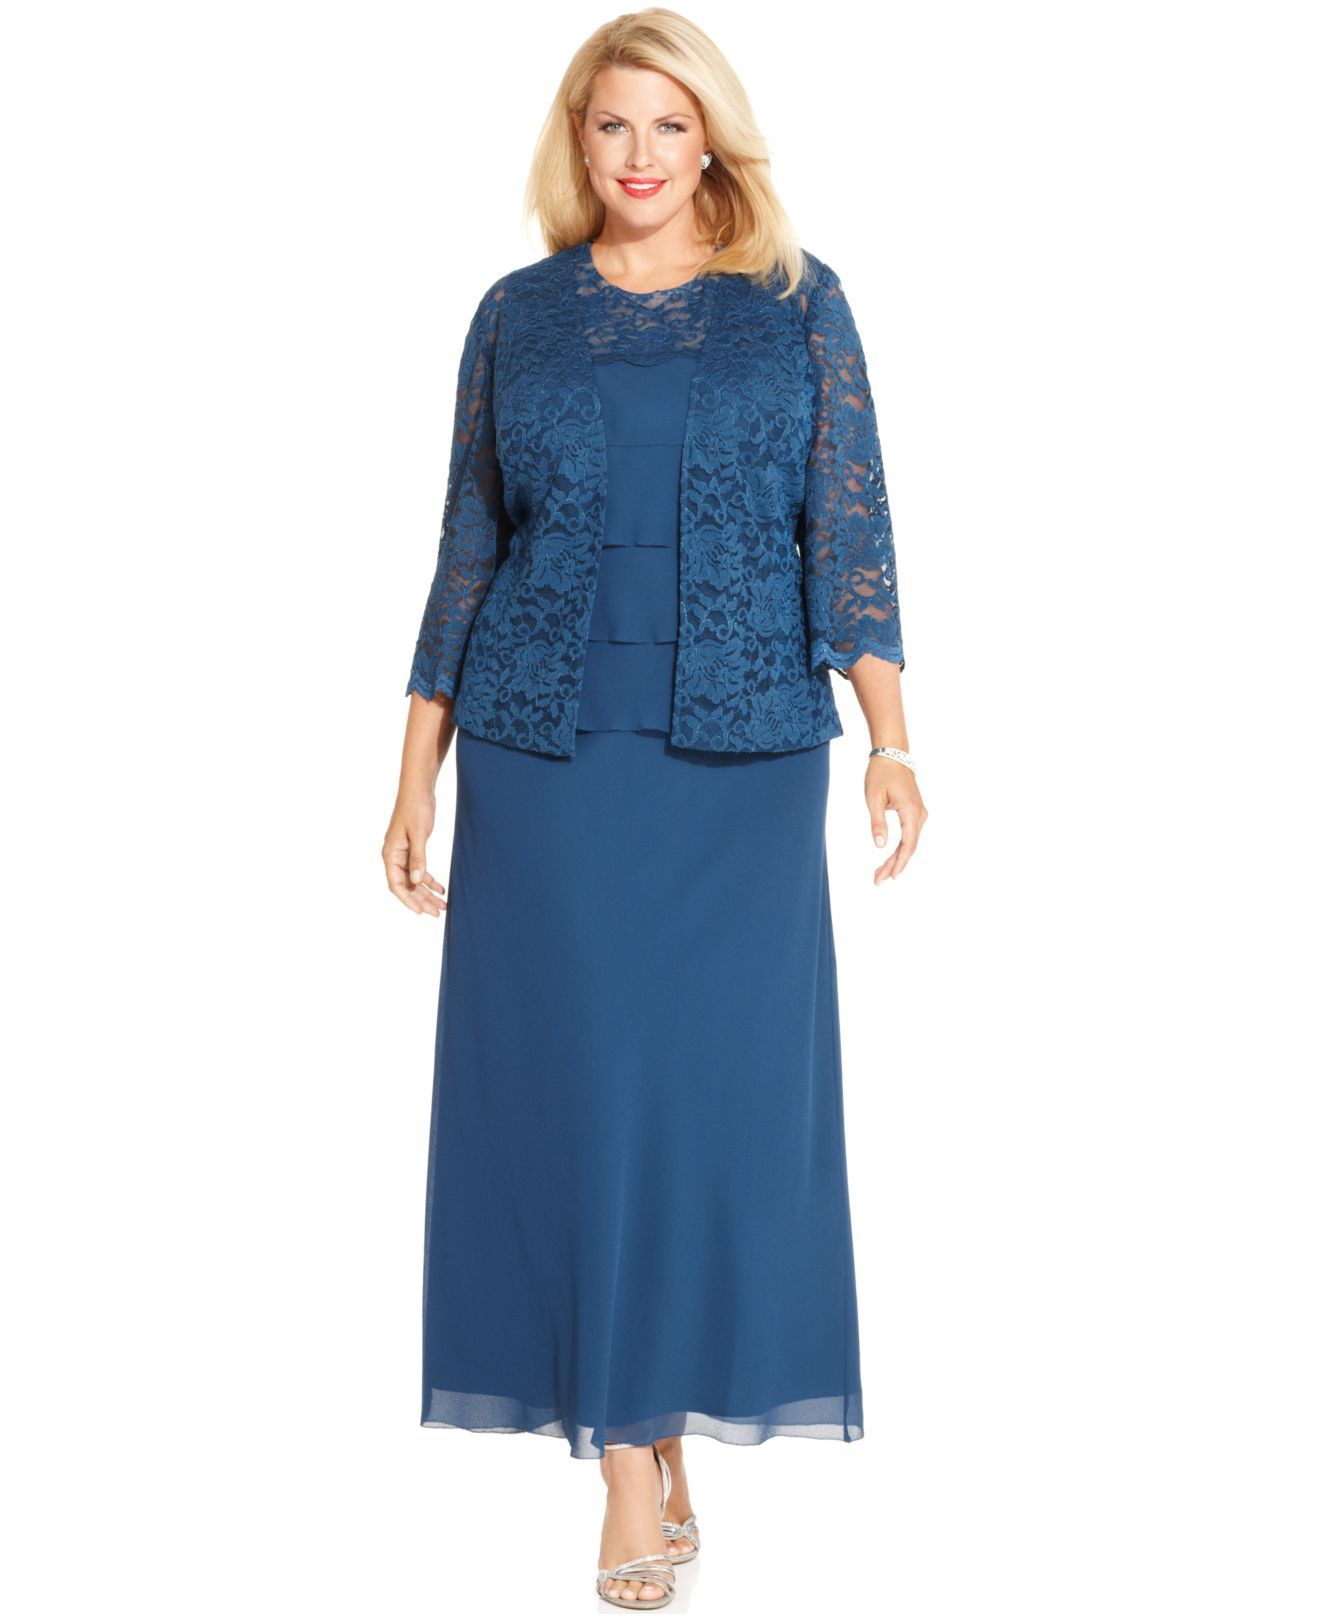 Women's Blue Plus Size Lace Tiered Dress And Jacket | More Tiered ...